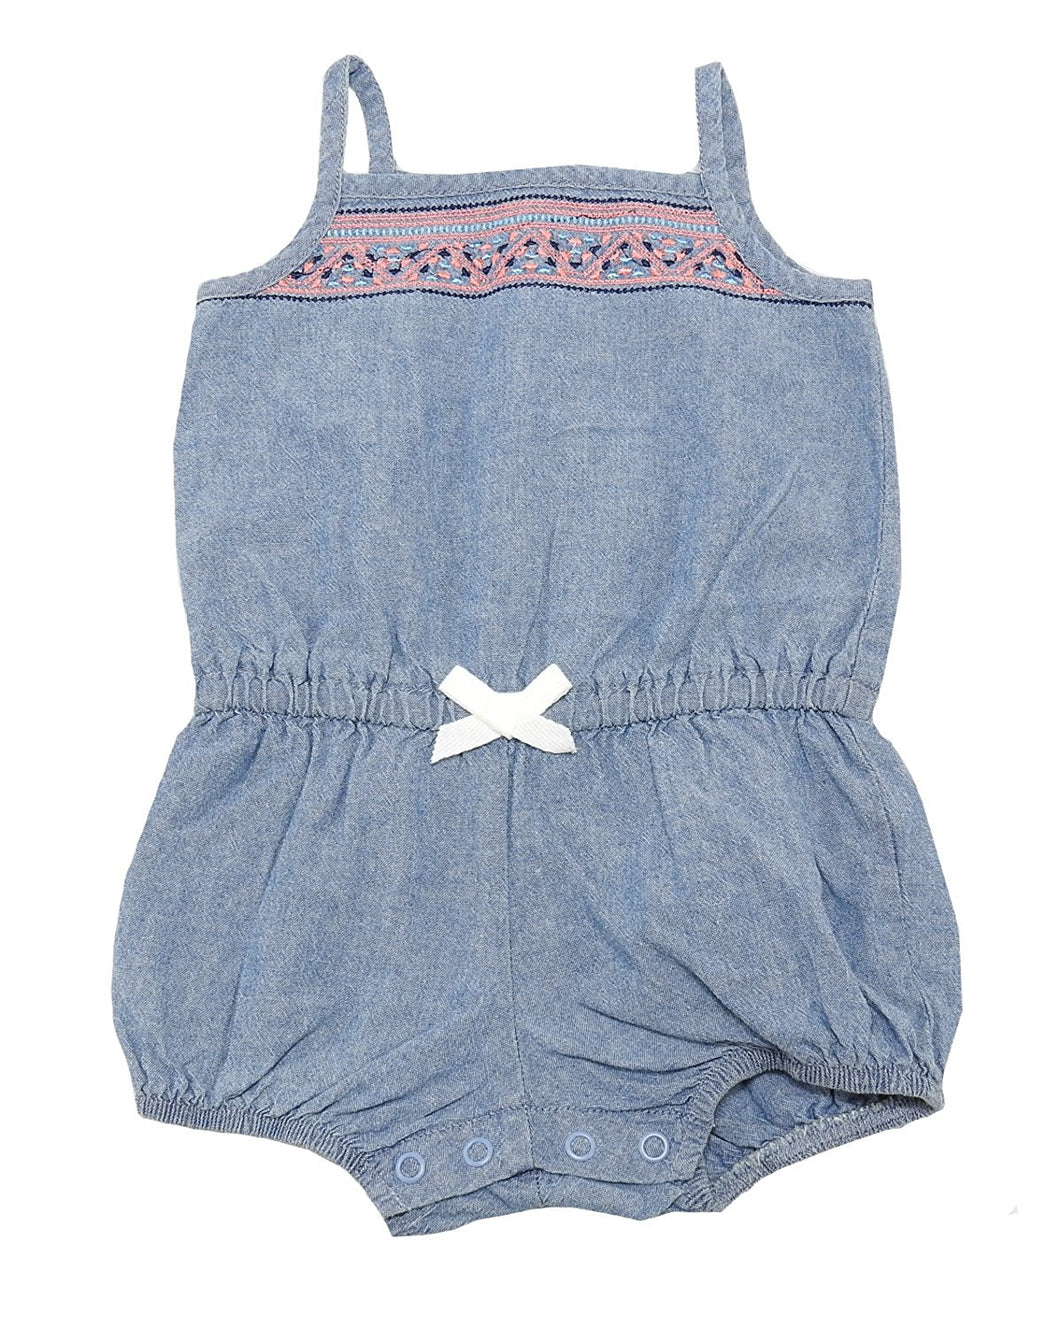 Carters Baby Girls Size 6 Months Sleeveless Short Romper, Blue